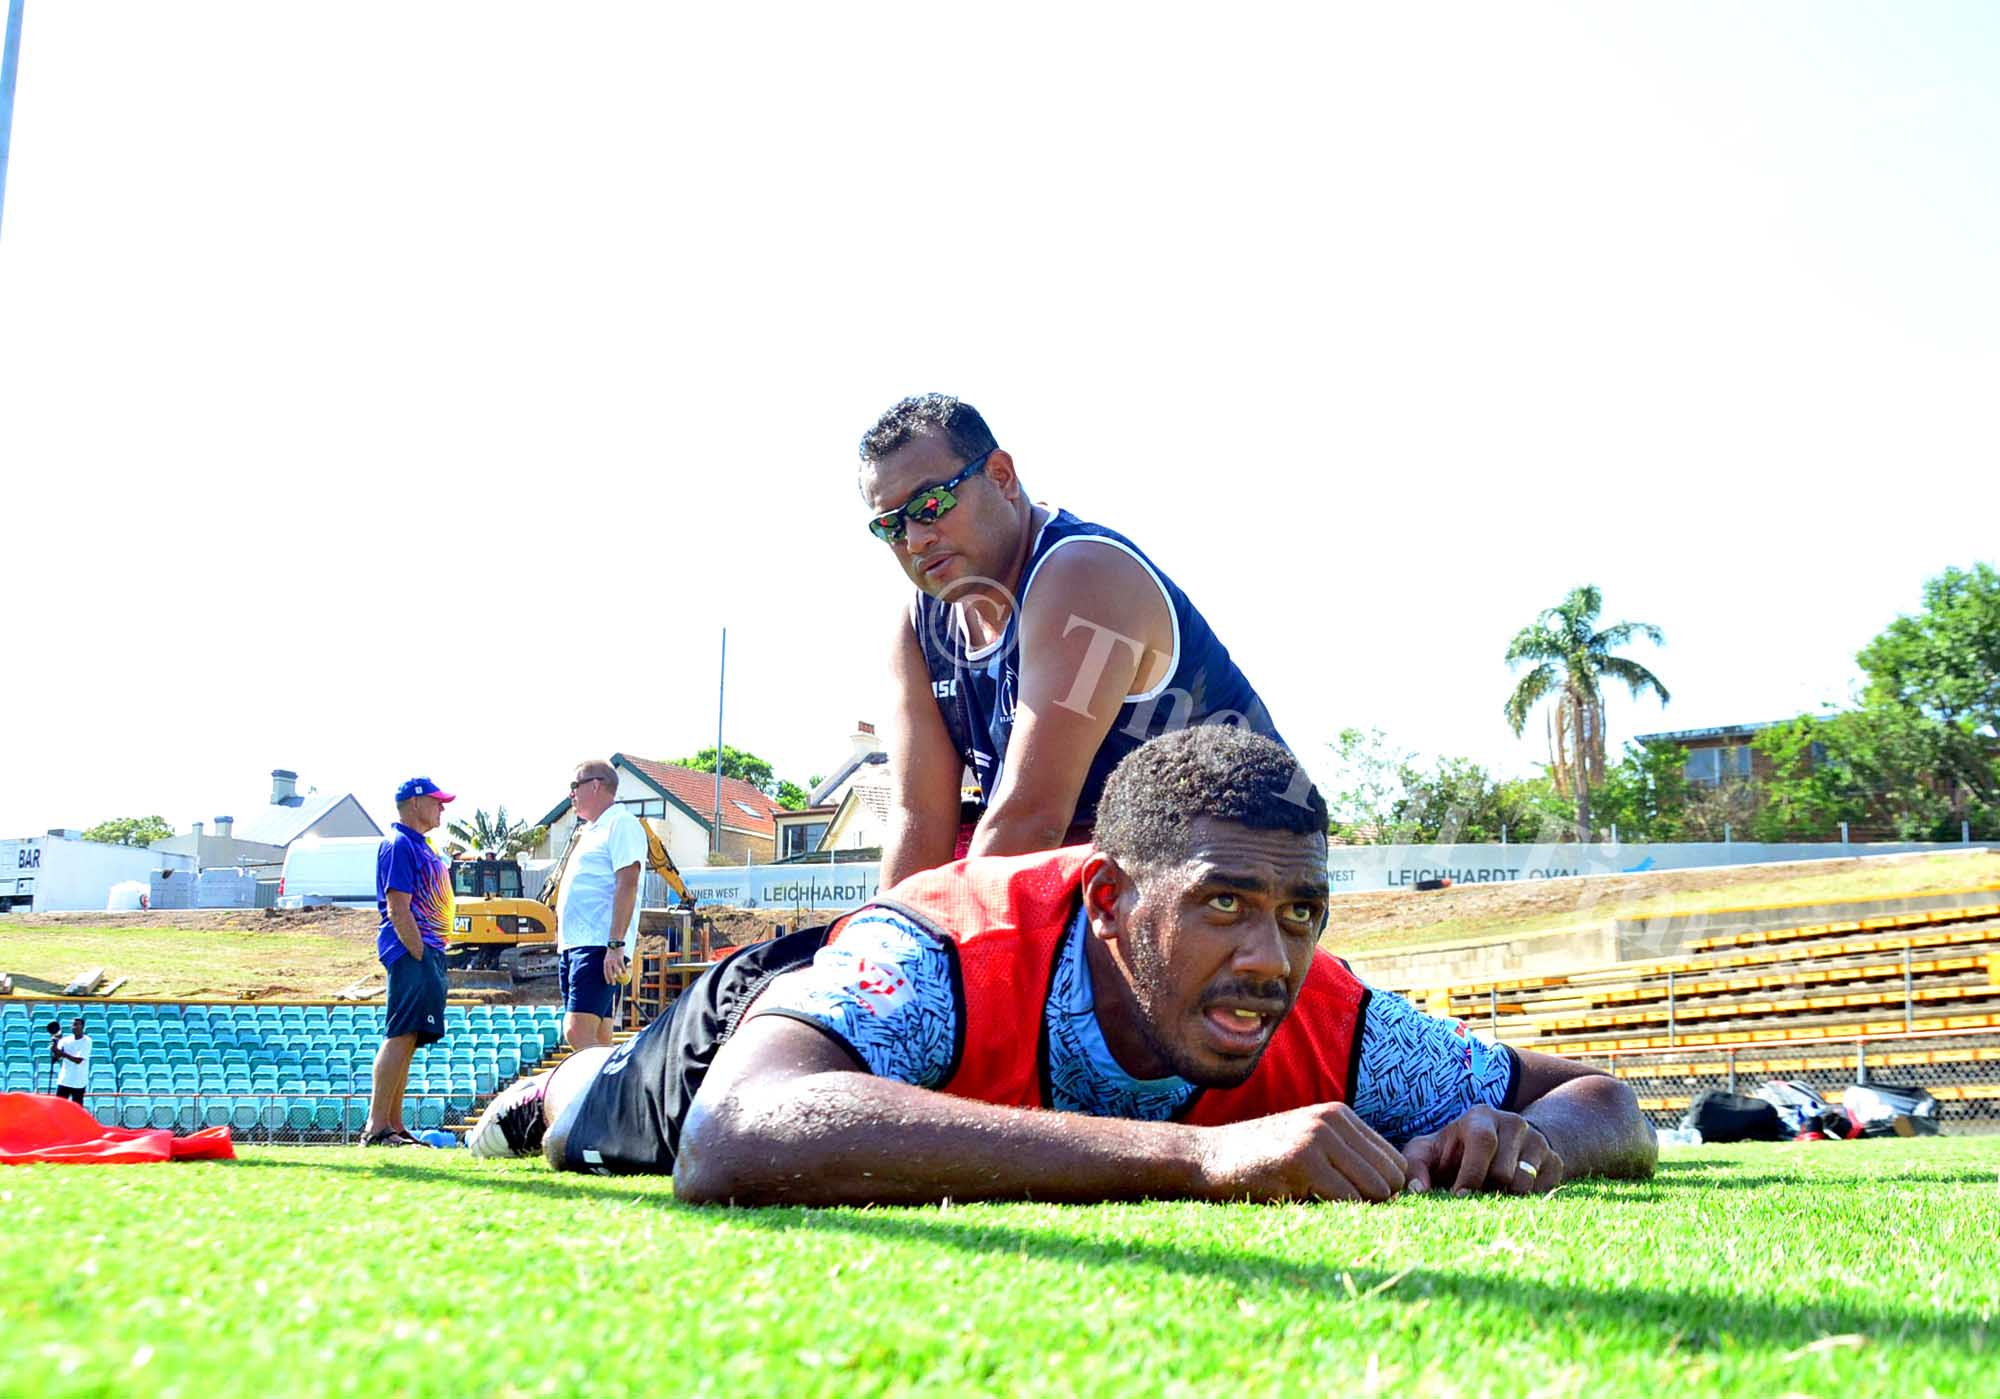 Physio William Kwoong attands to Kalione Nasoko during the Fiji Airways Fiji 7s team training at the Leichhardt Oval ground in Sydney, Australia on Wednesday, January 24, 2018. Picture: JONACANI LALAKOBAU